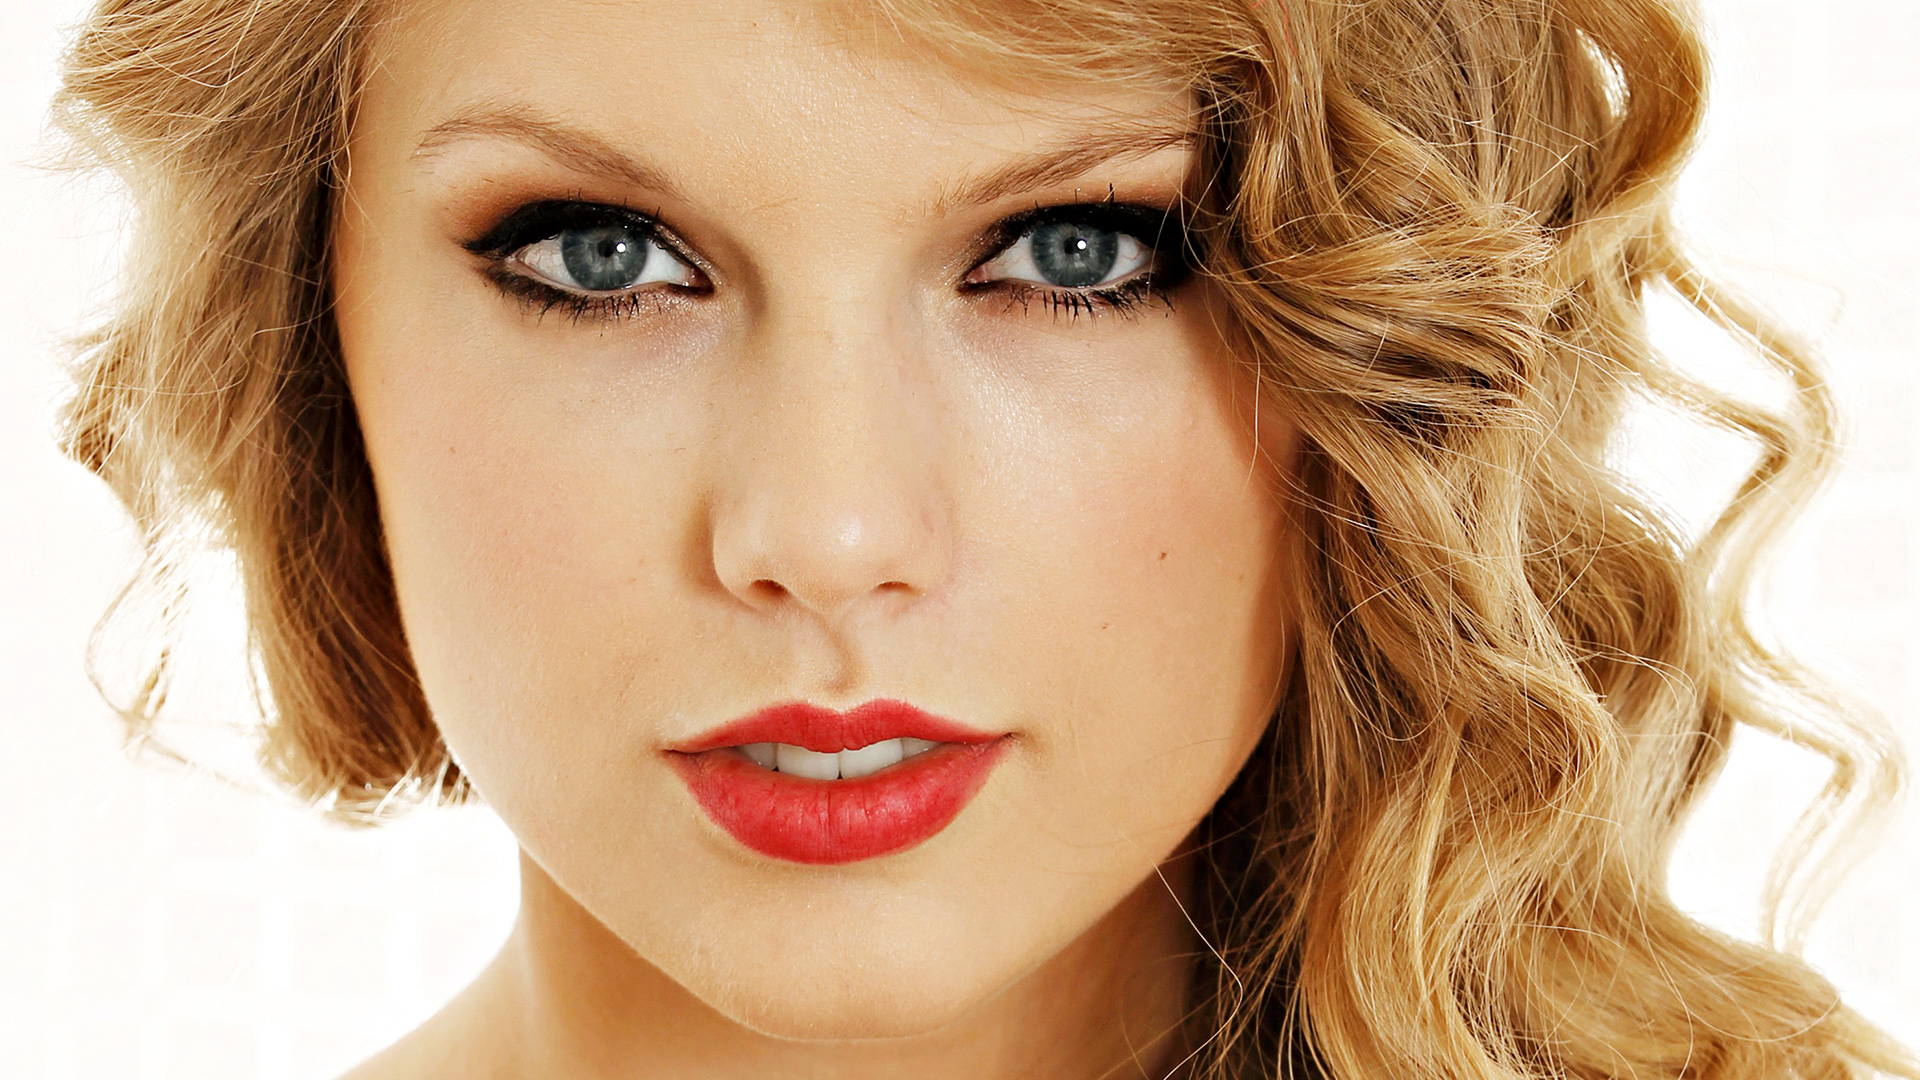 taylor-swift-wallpaper-images-pictures